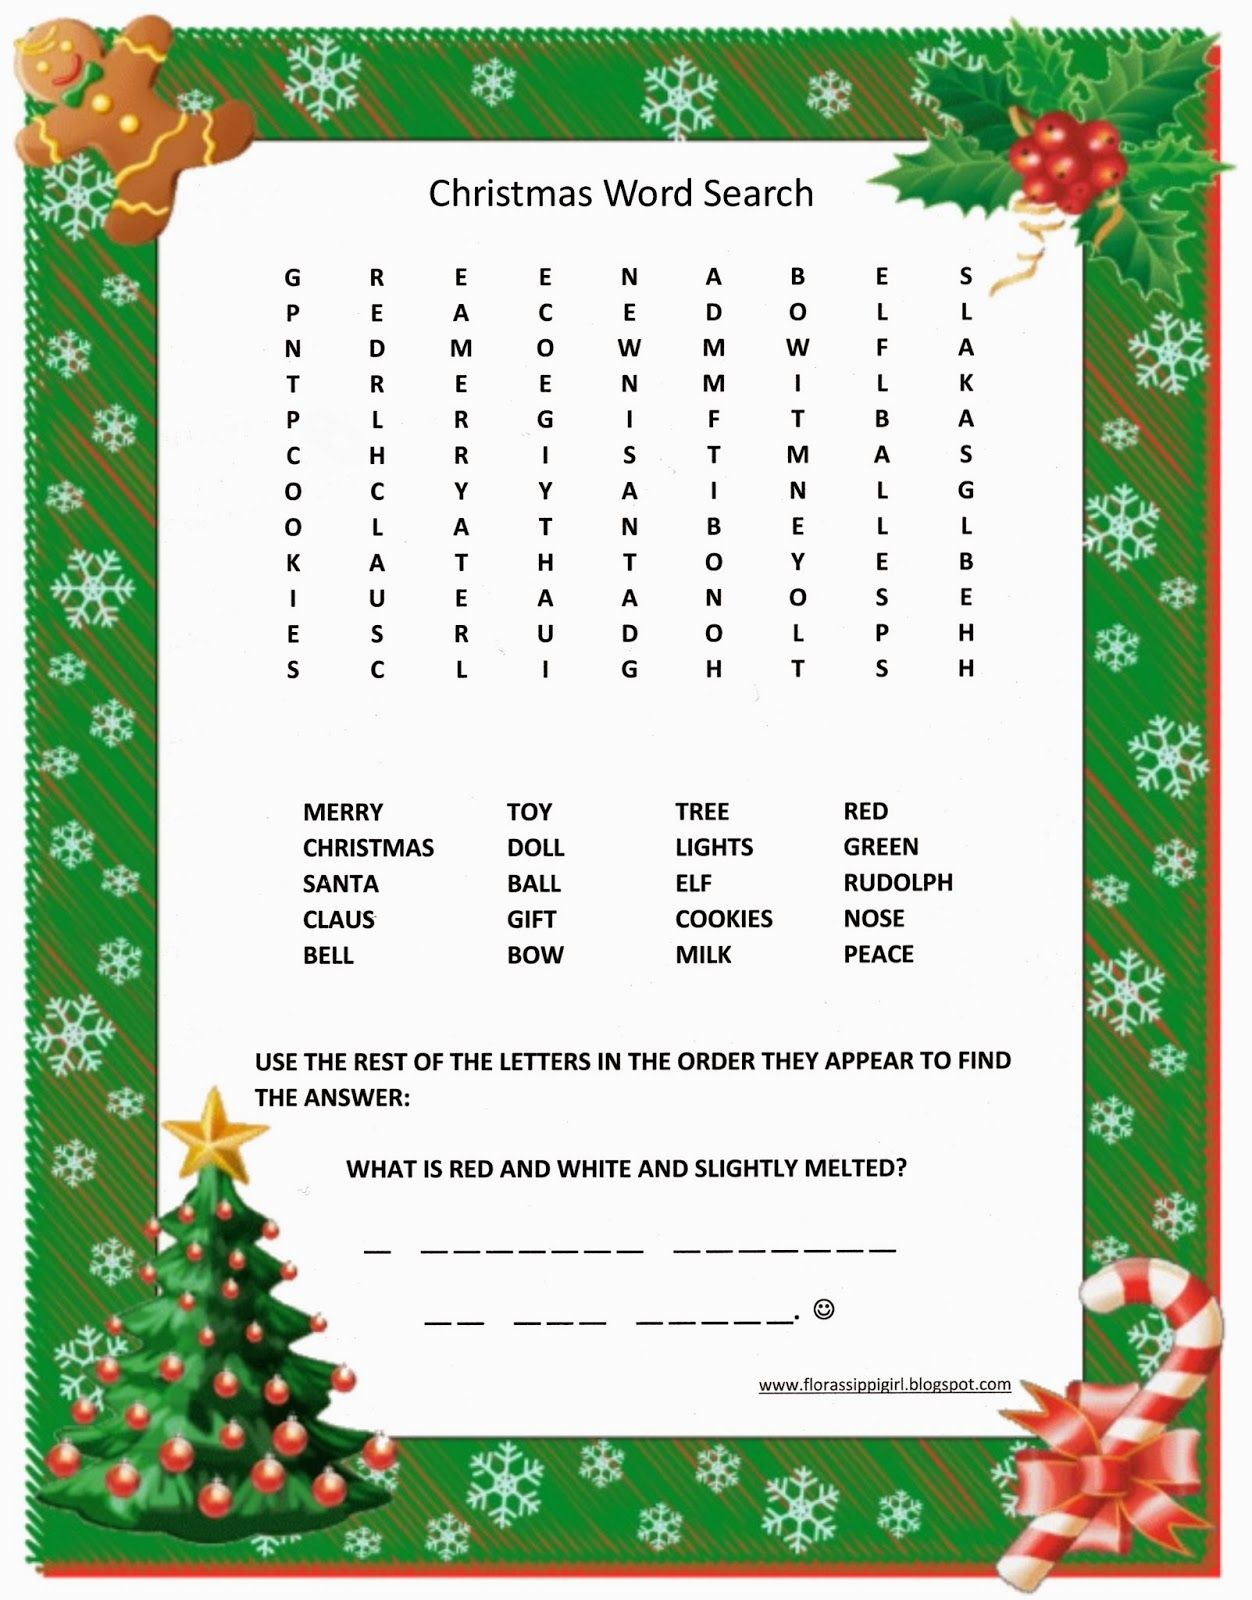 florassippi girl christmas word search free printable - Christmas Words That Start With Z